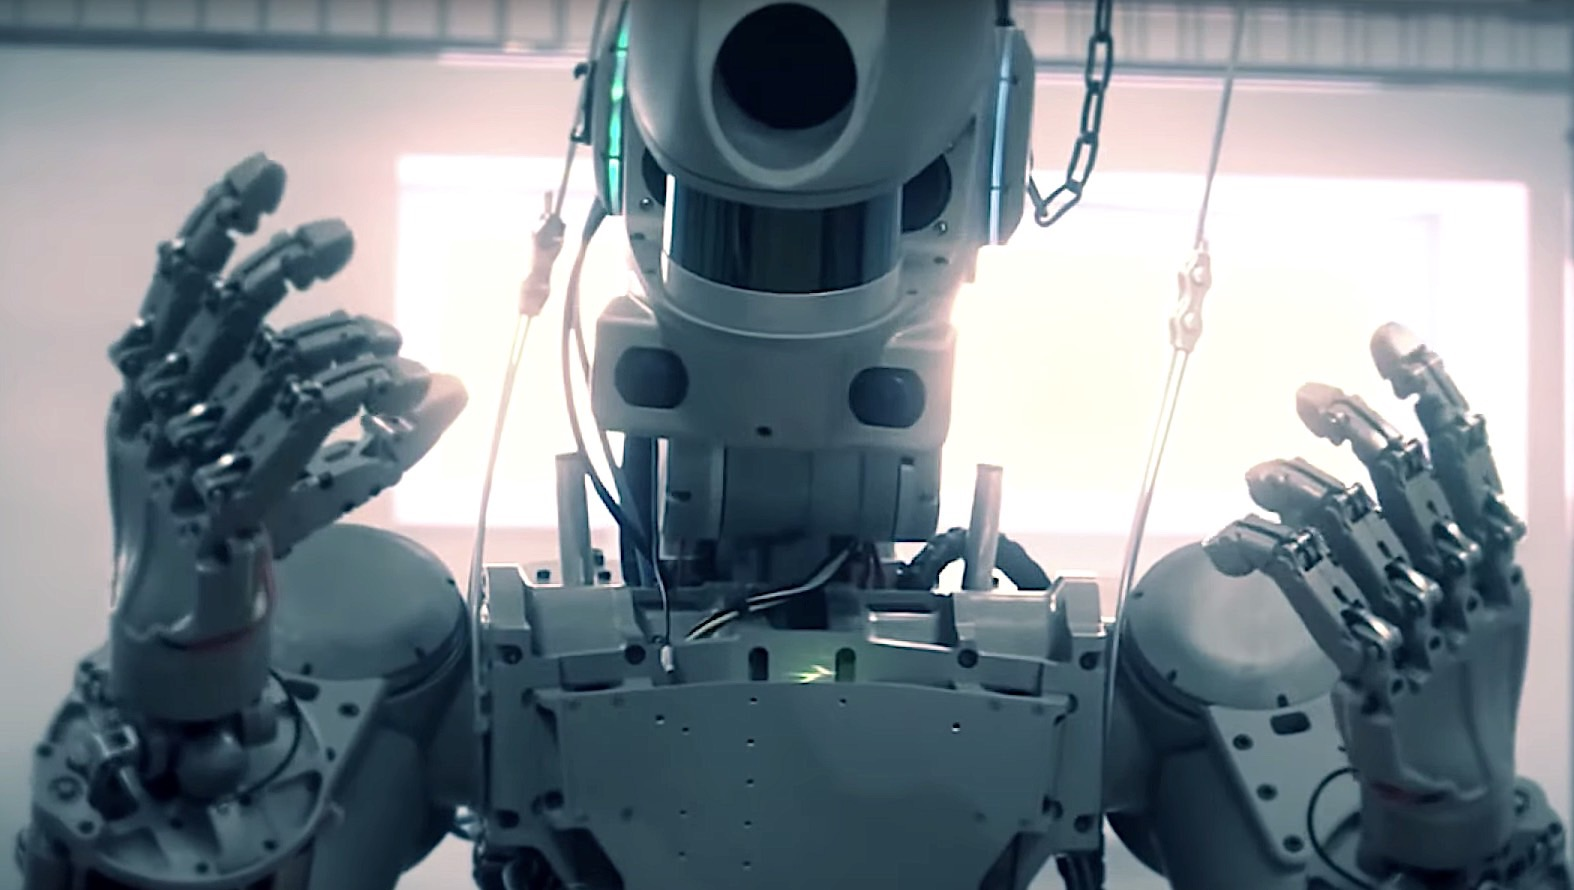 'Let's go': Russian Federation launches humanoid robot Fedor into space